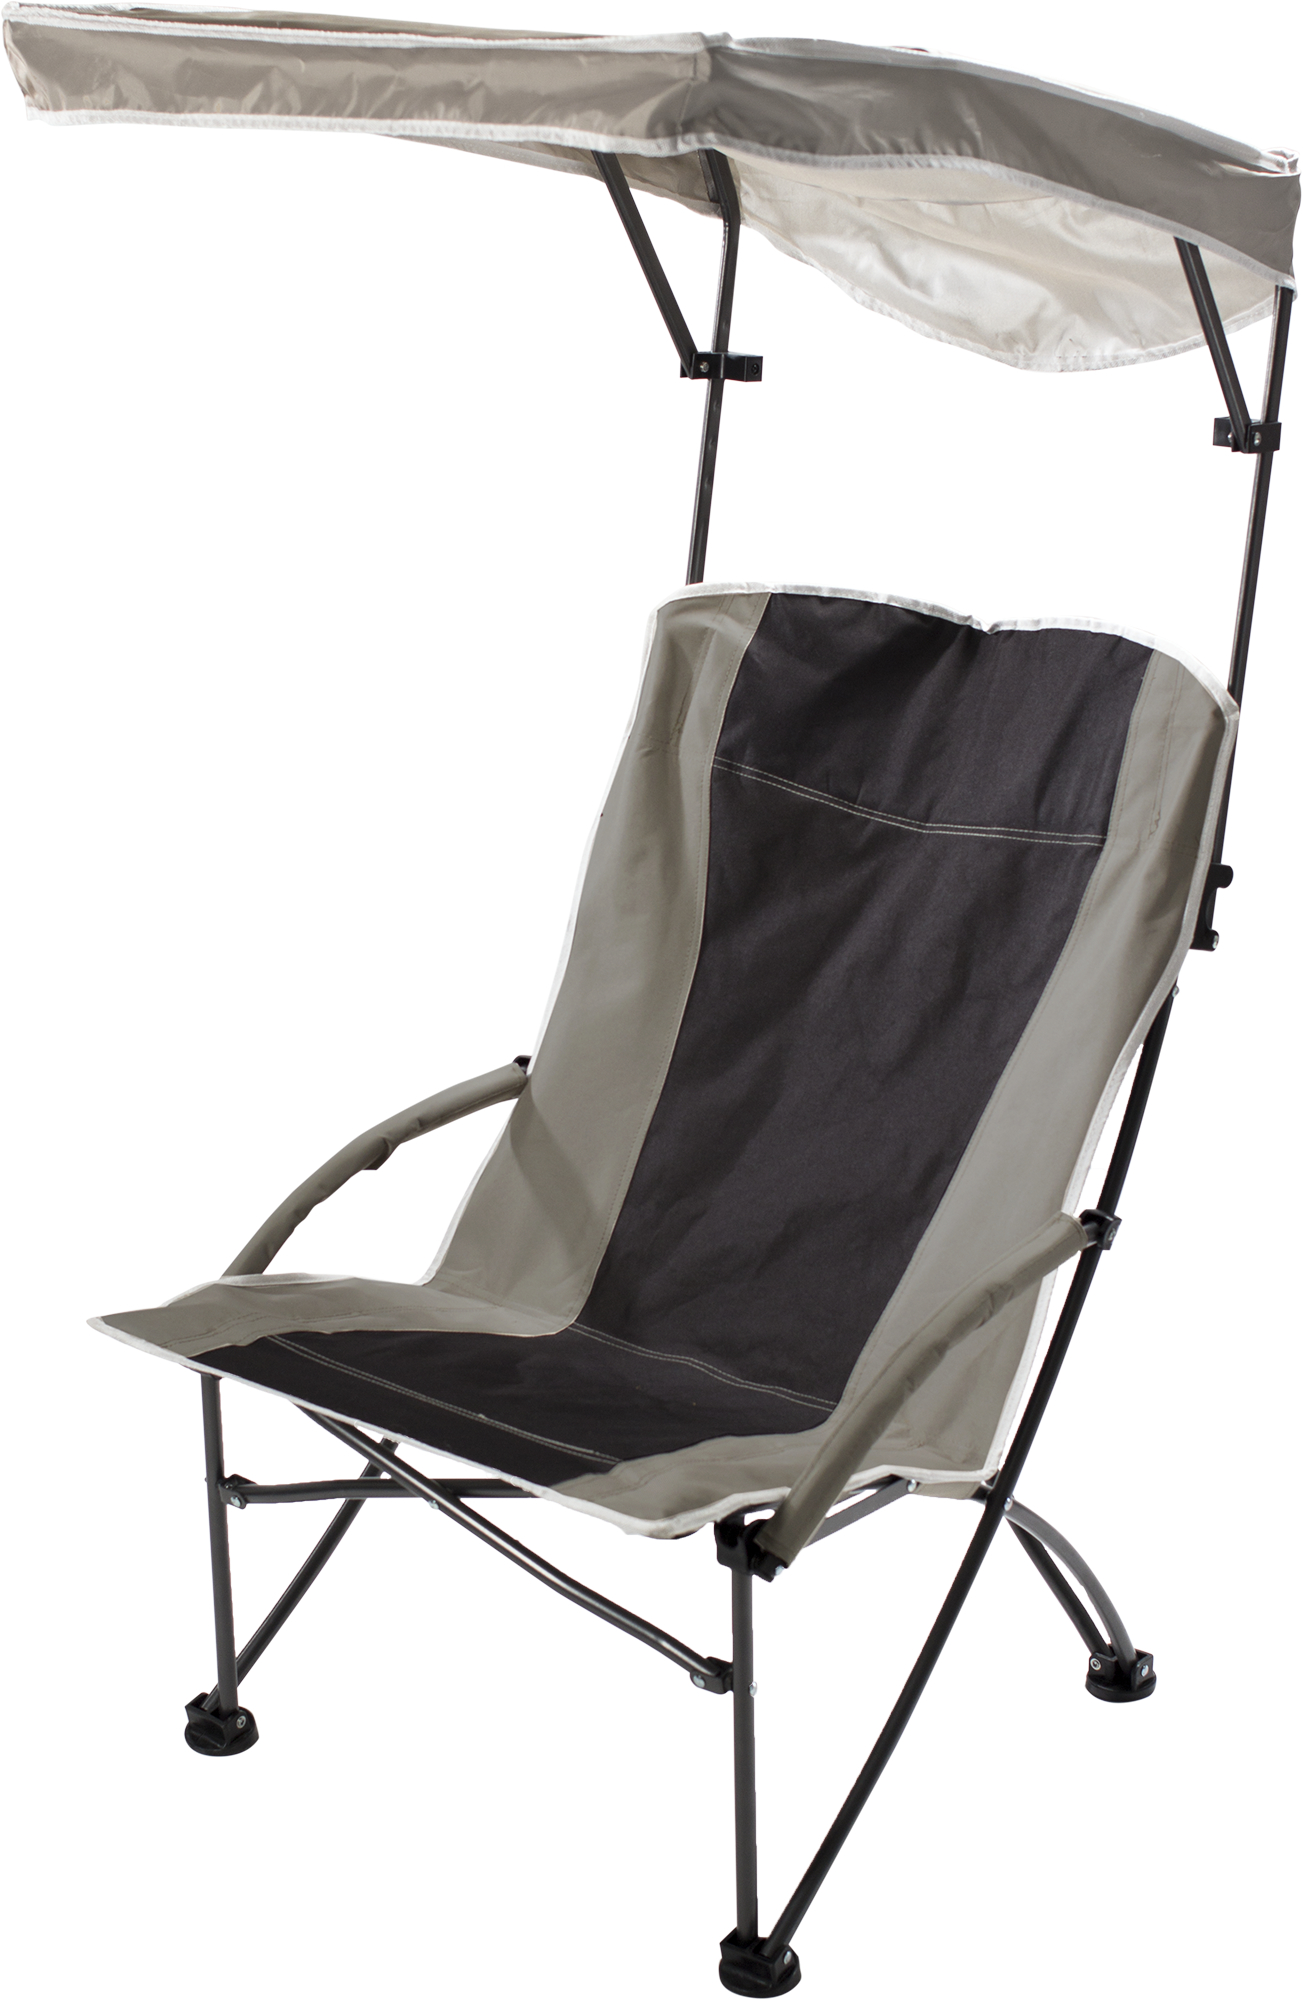 Pro Comfort High Shade Chair,Tan Fabric,Graphite Frame